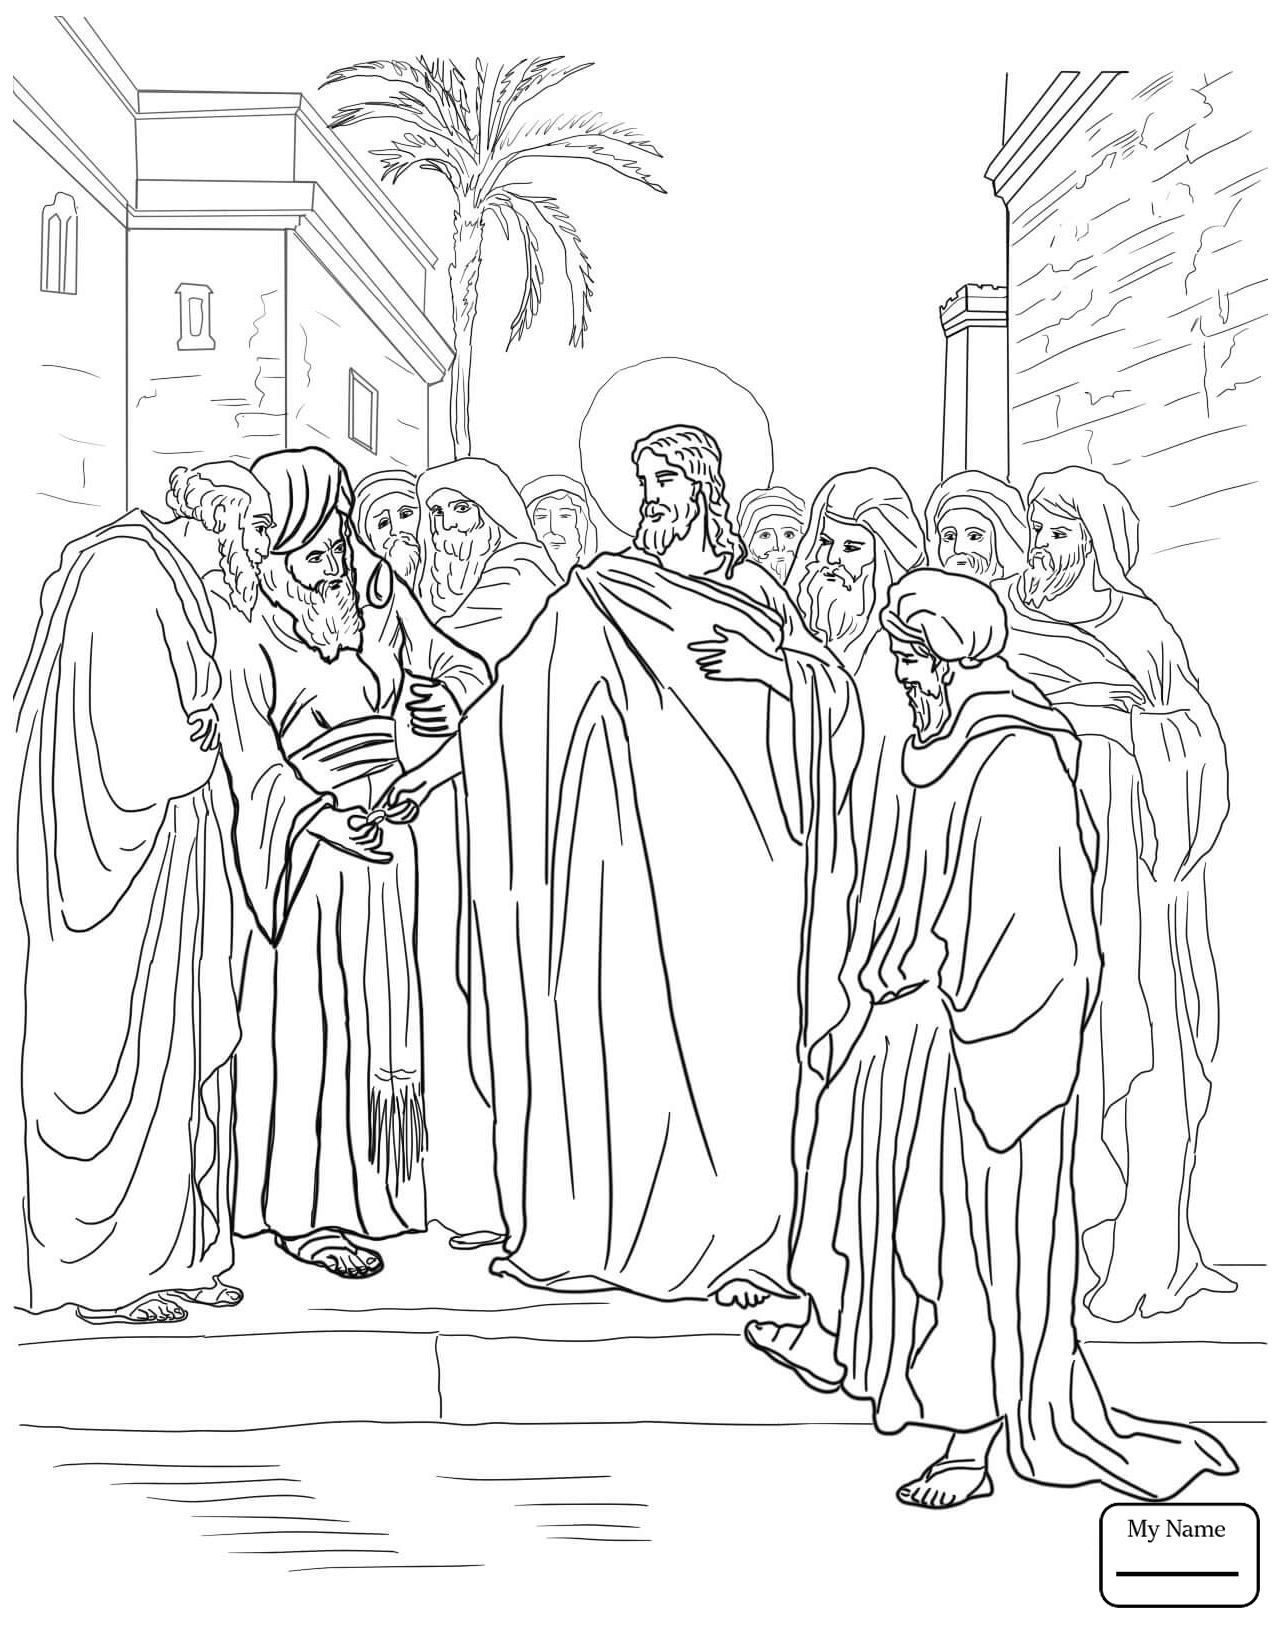 disciples coloring pages printable the twelve apostles coloring download the twelve apostles coloring disciples pages printable